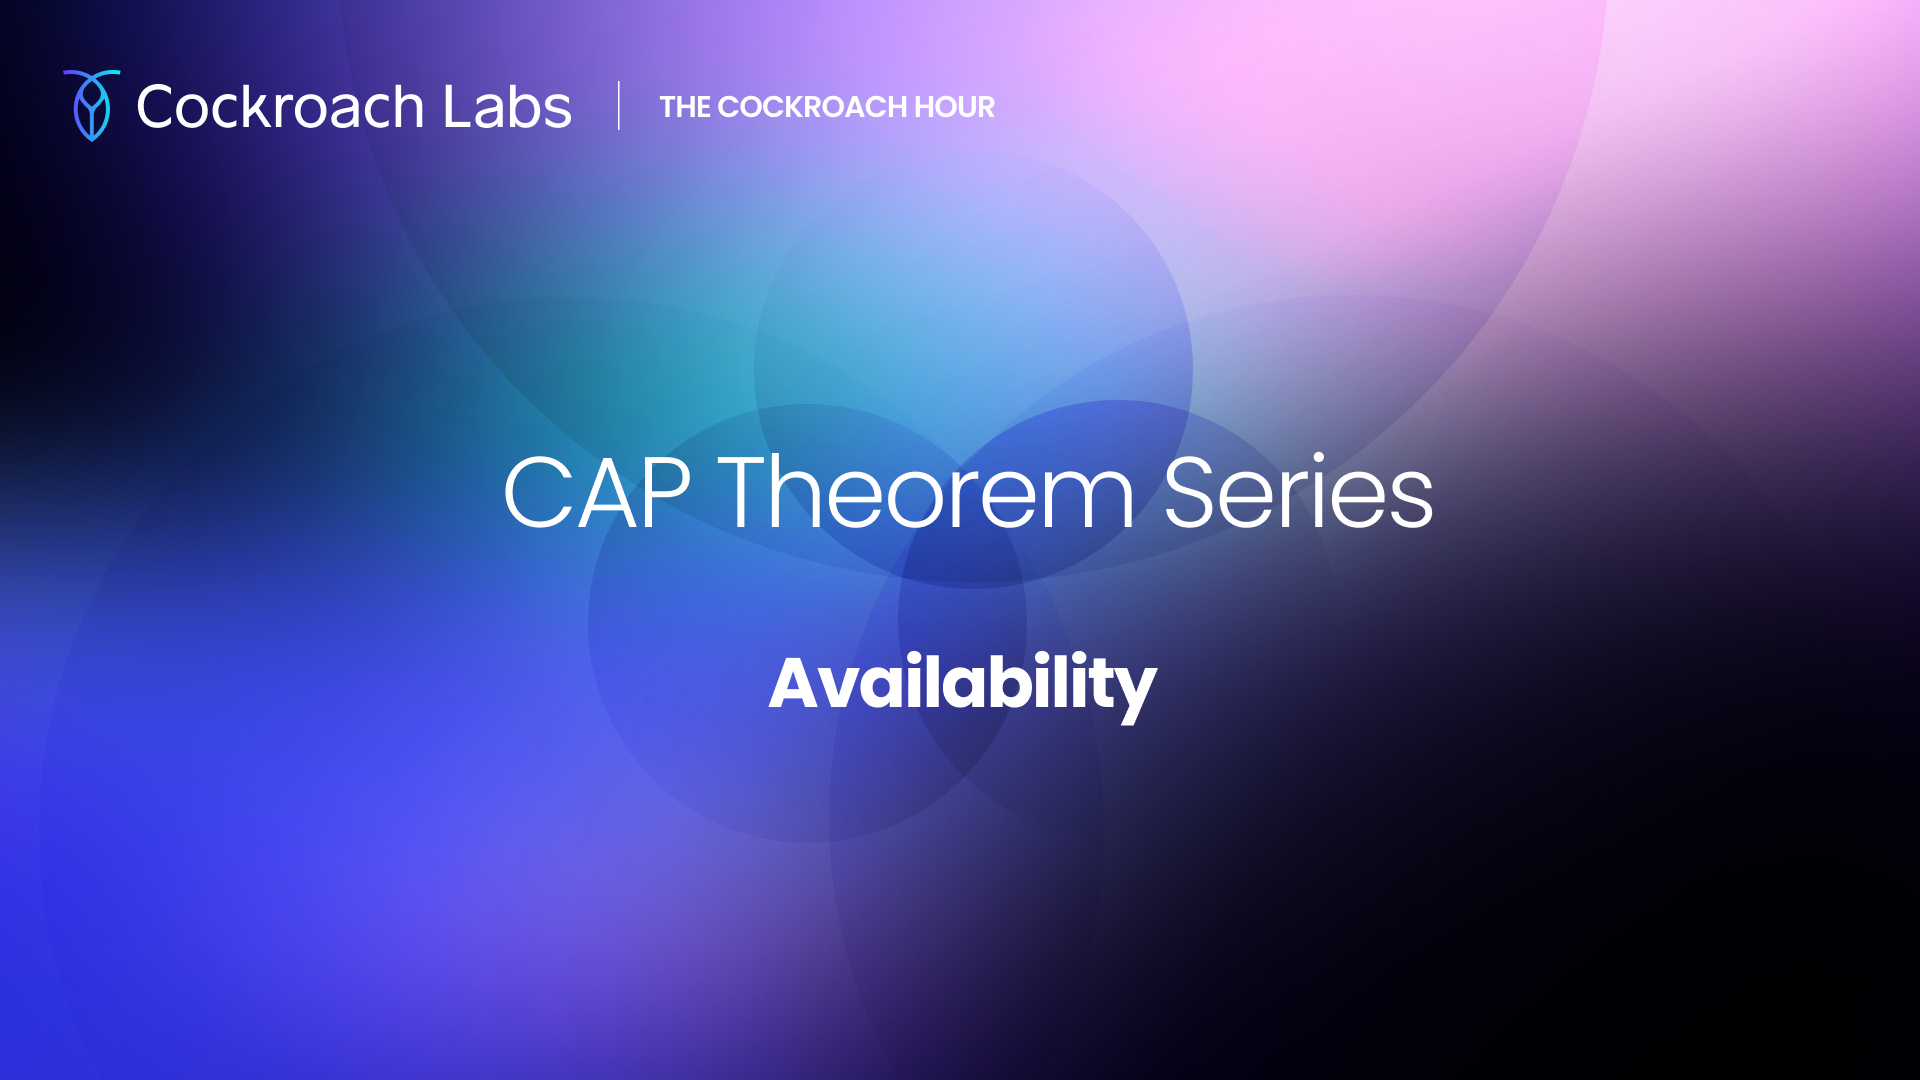 The Cockroach Hour: CAP Theorem Series - Availability